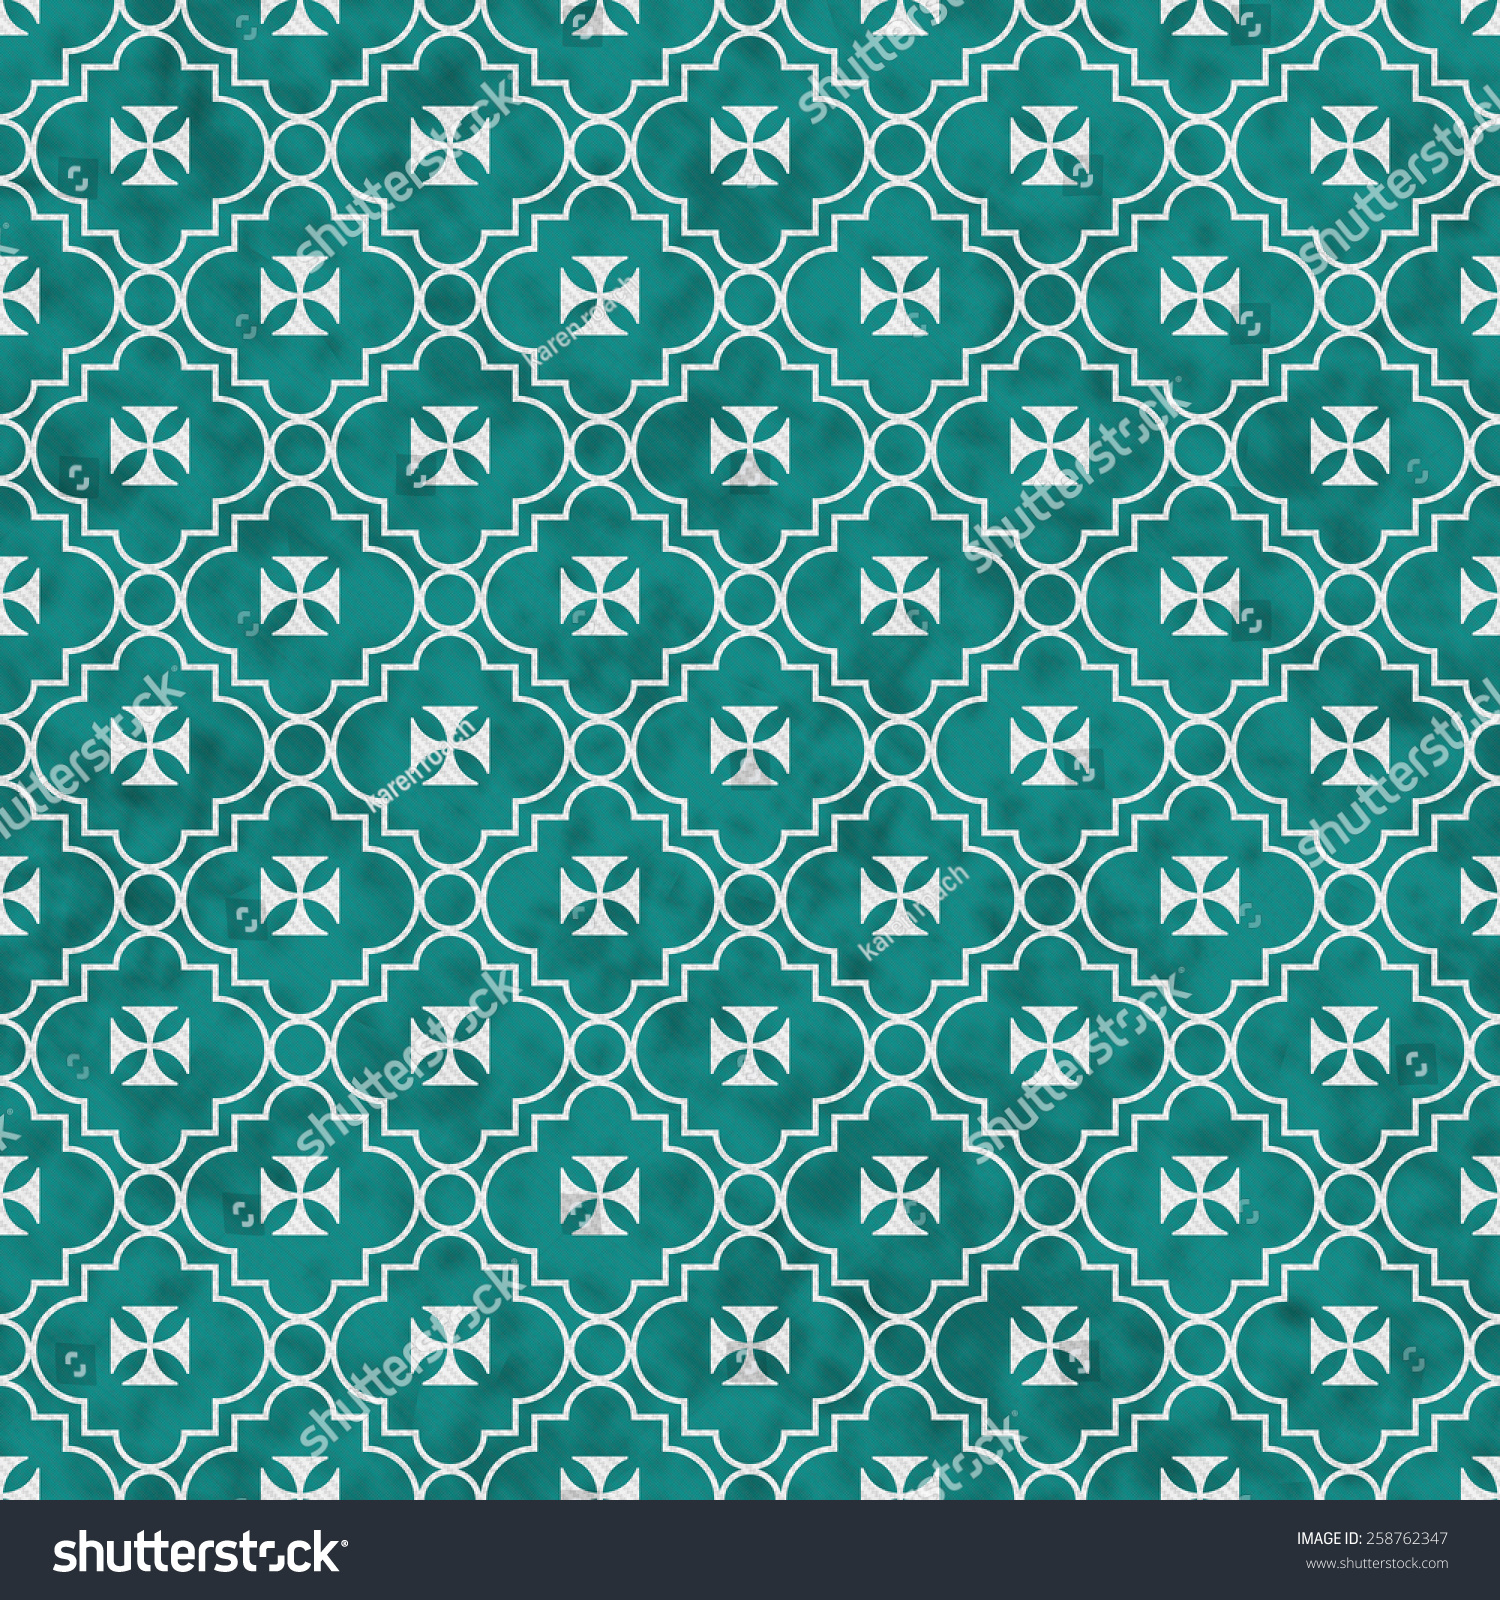 Teal white maltese cross symbol tile stock illustration 258762347 teal and white maltese cross symbol tile pattern repeat background that is seamless and repeats biocorpaavc